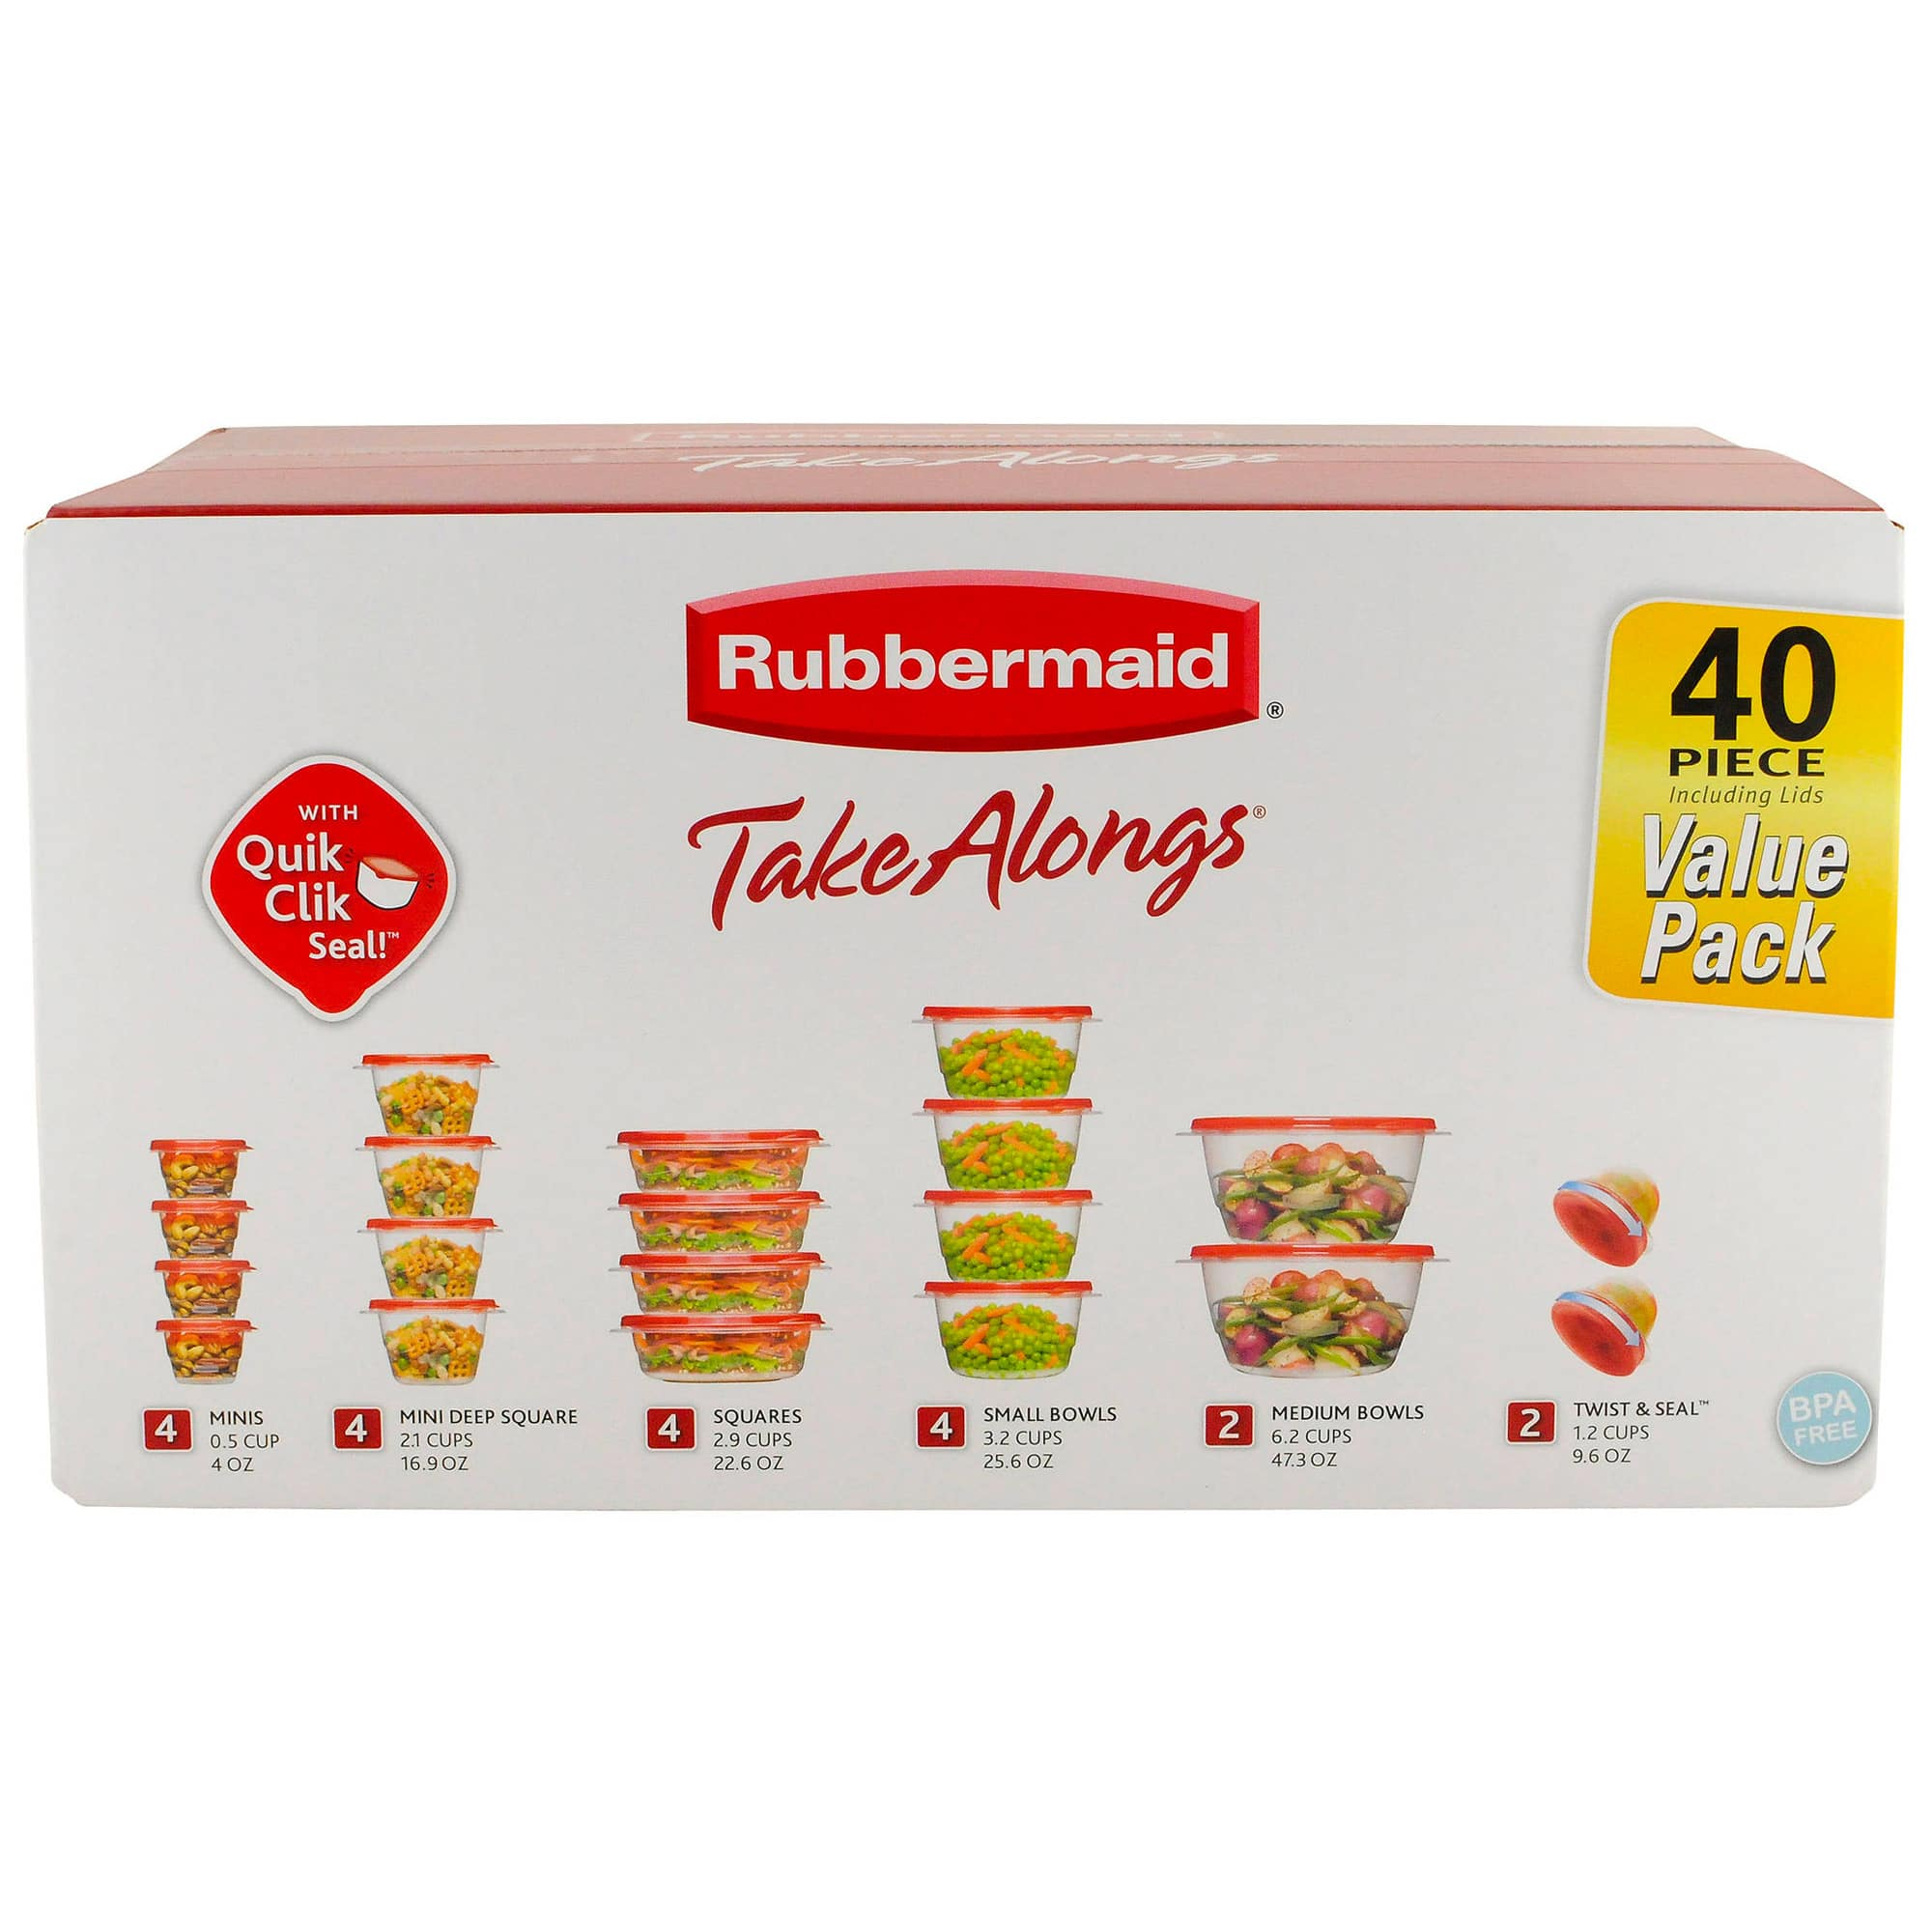 Rubbermaid TakeAlongs Food Storage Containers, 40 Piece Set, Ruby Red - $8.48 In Store Only